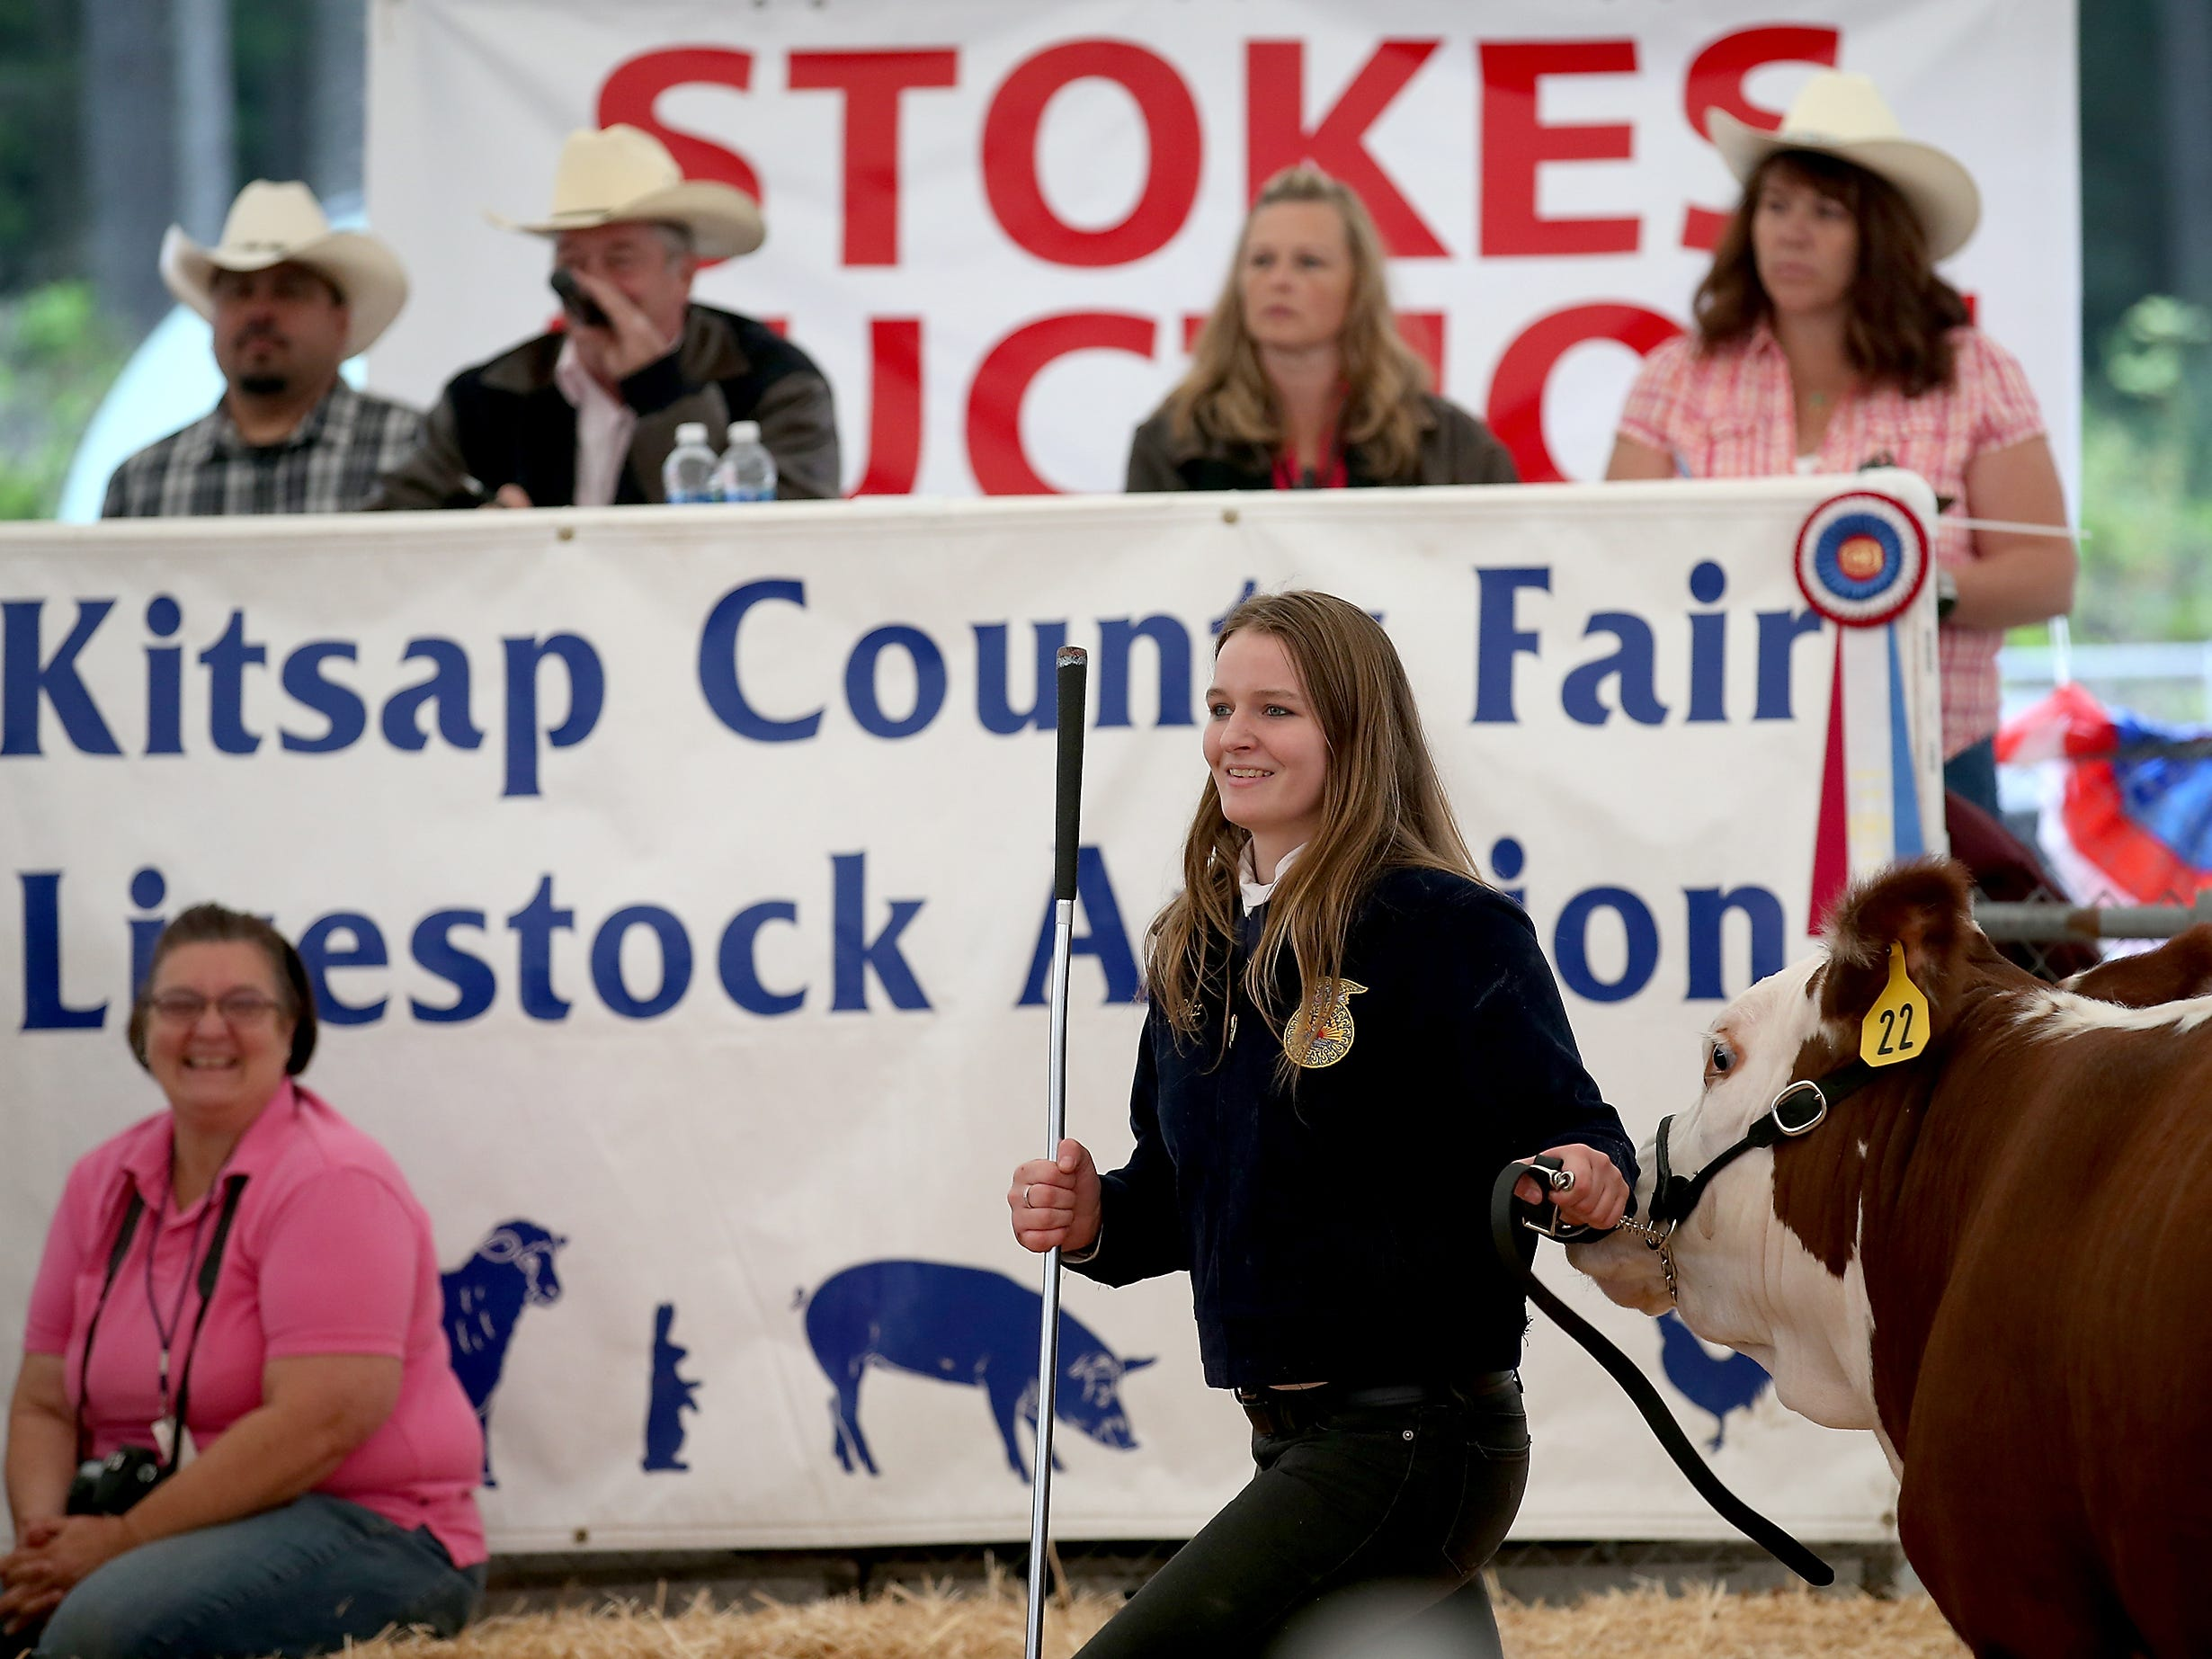 South Kitsap FFA member A.J. Shipp leads her steer around the auction ring at the Kitsap County Fair & Stampede on Saturday, August 25. 2018.